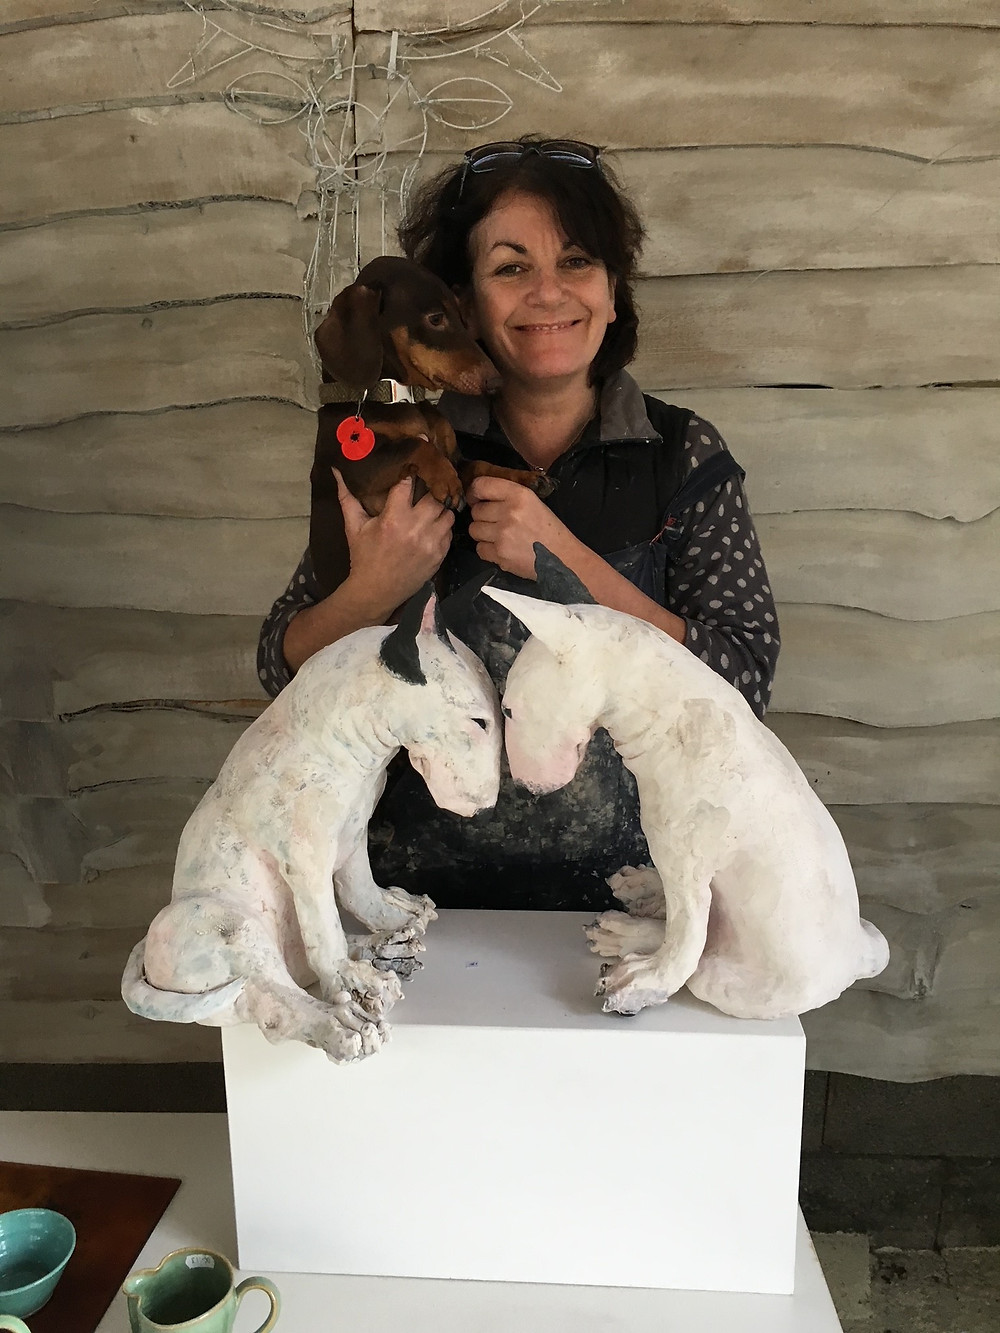 Photo shows Christine holding her daxie dog Frank. In front of her is a white plinth with two large white ceramic dogs facing each other